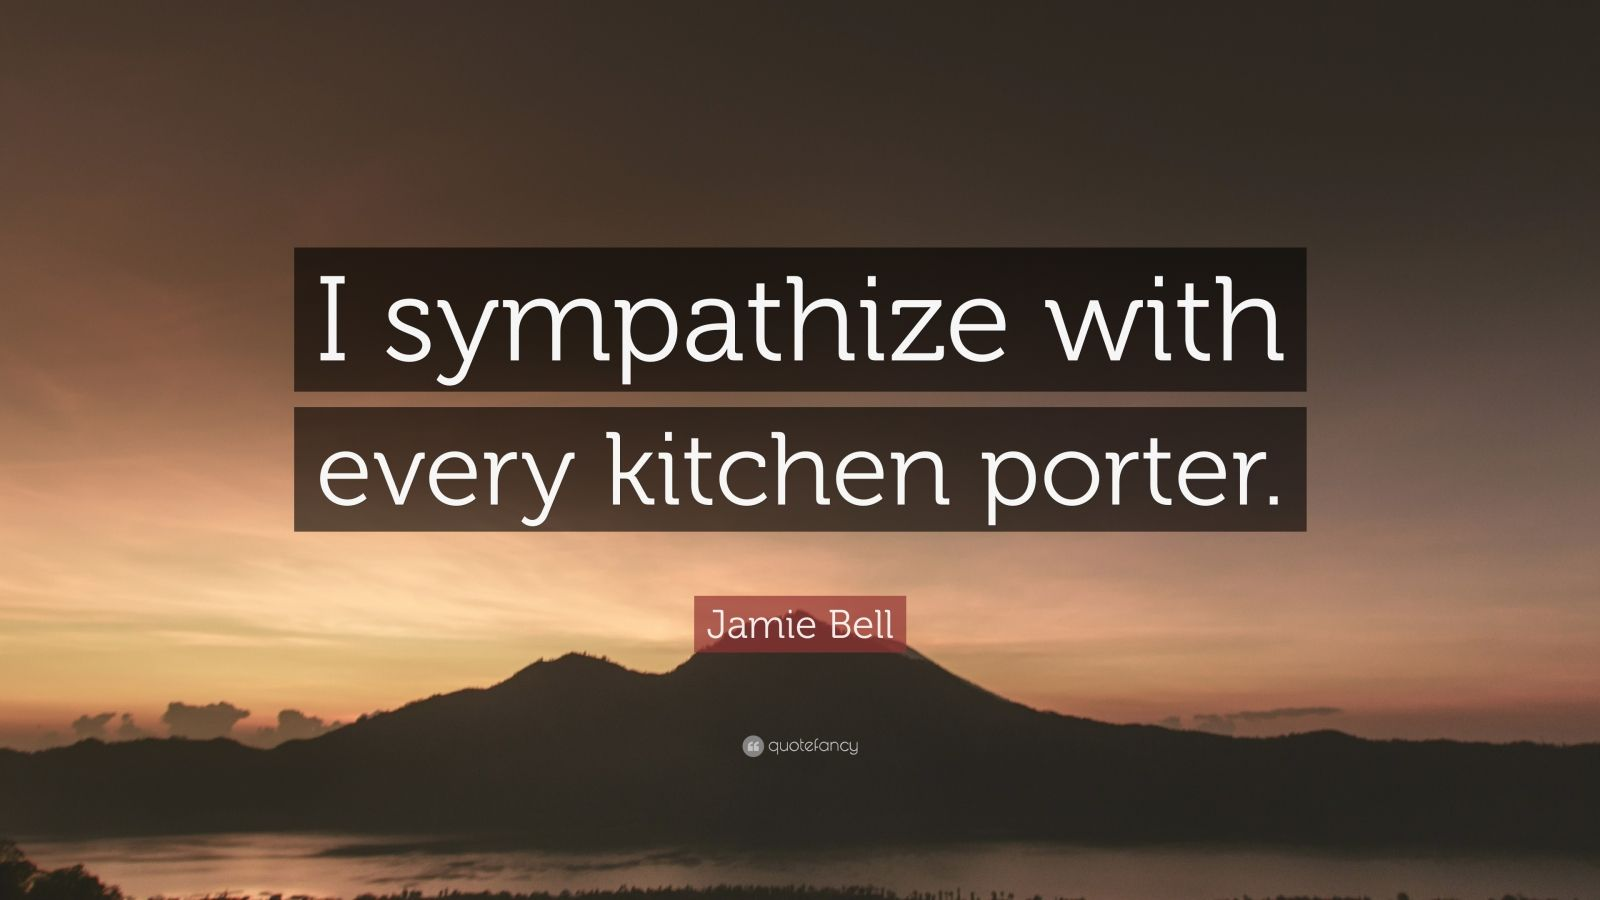 Jamie bell quote i sympathize with every kitchen porter 7 jamie bell quote i sympathize with every kitchen porter altavistaventures Choice Image